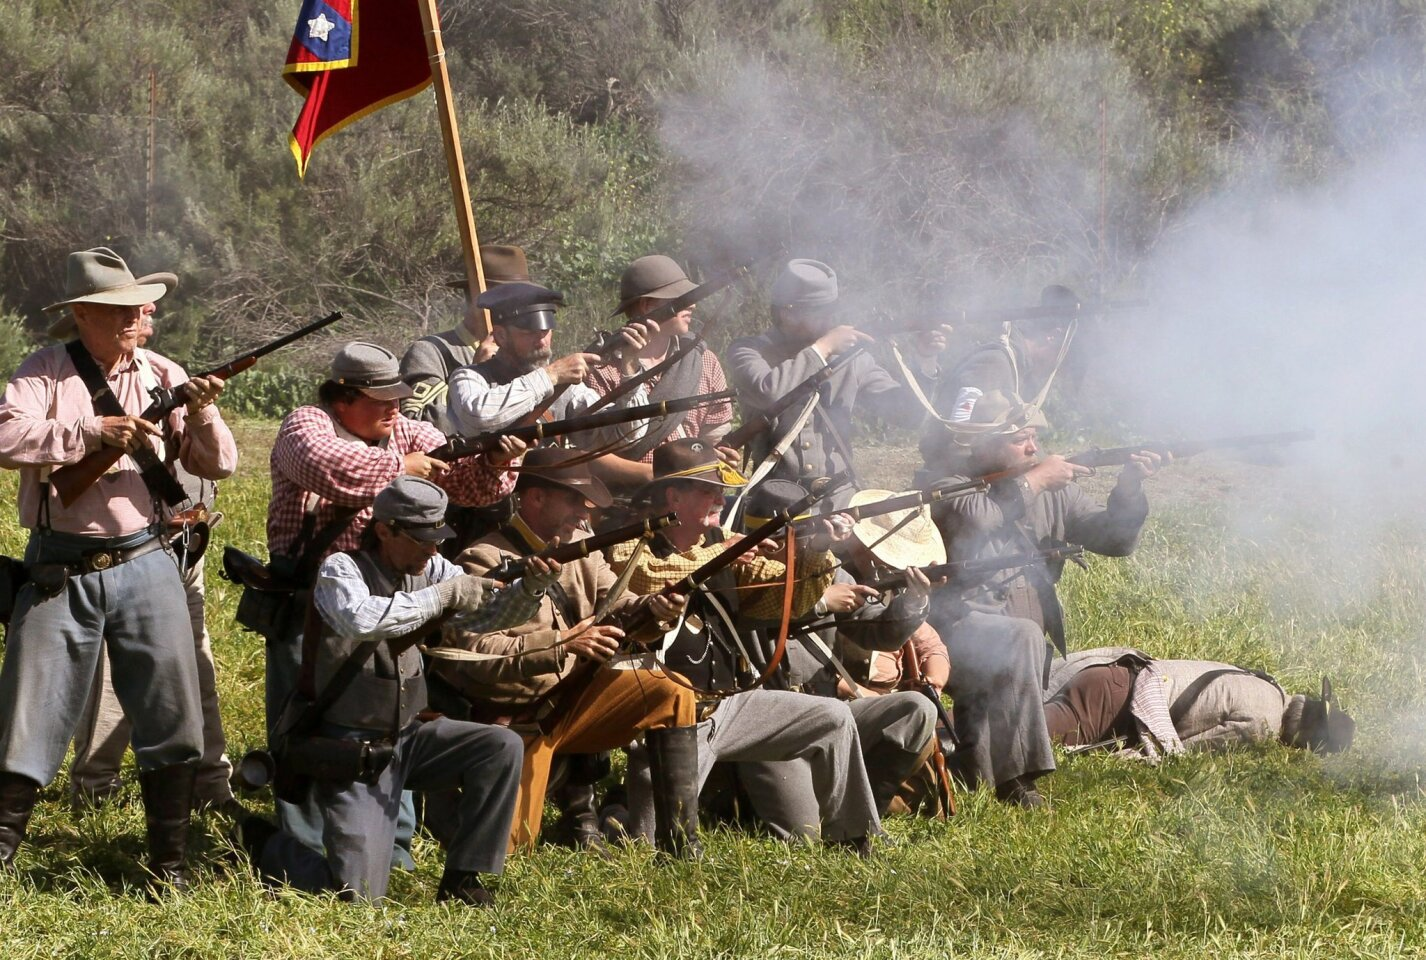 Confederate soldiers fire at the Union soldiers.